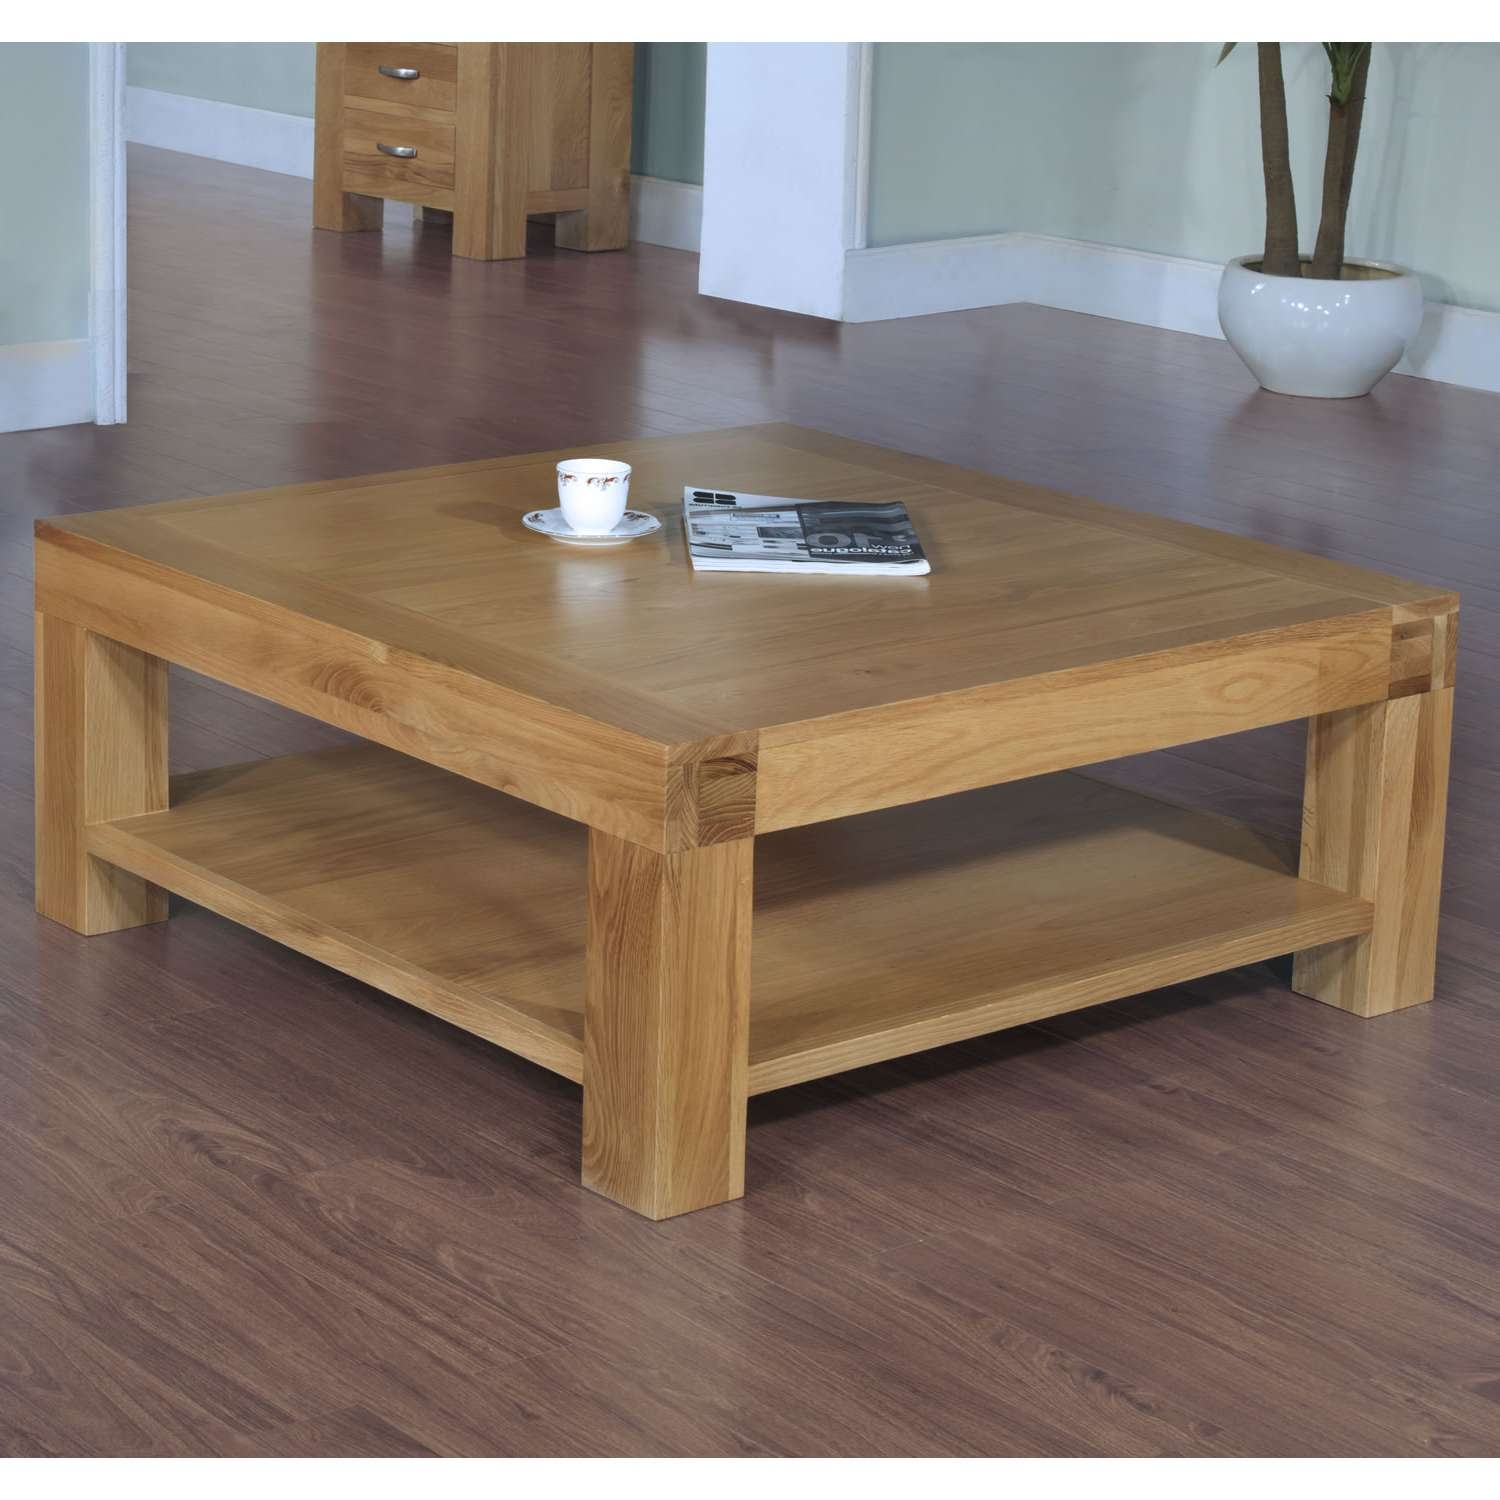 Coffee Tables : Mesmerizing Rustic Wood Coffee Table Reclaimed Log In Popular Rustic Square Coffee Table With Storage (View 7 of 20)